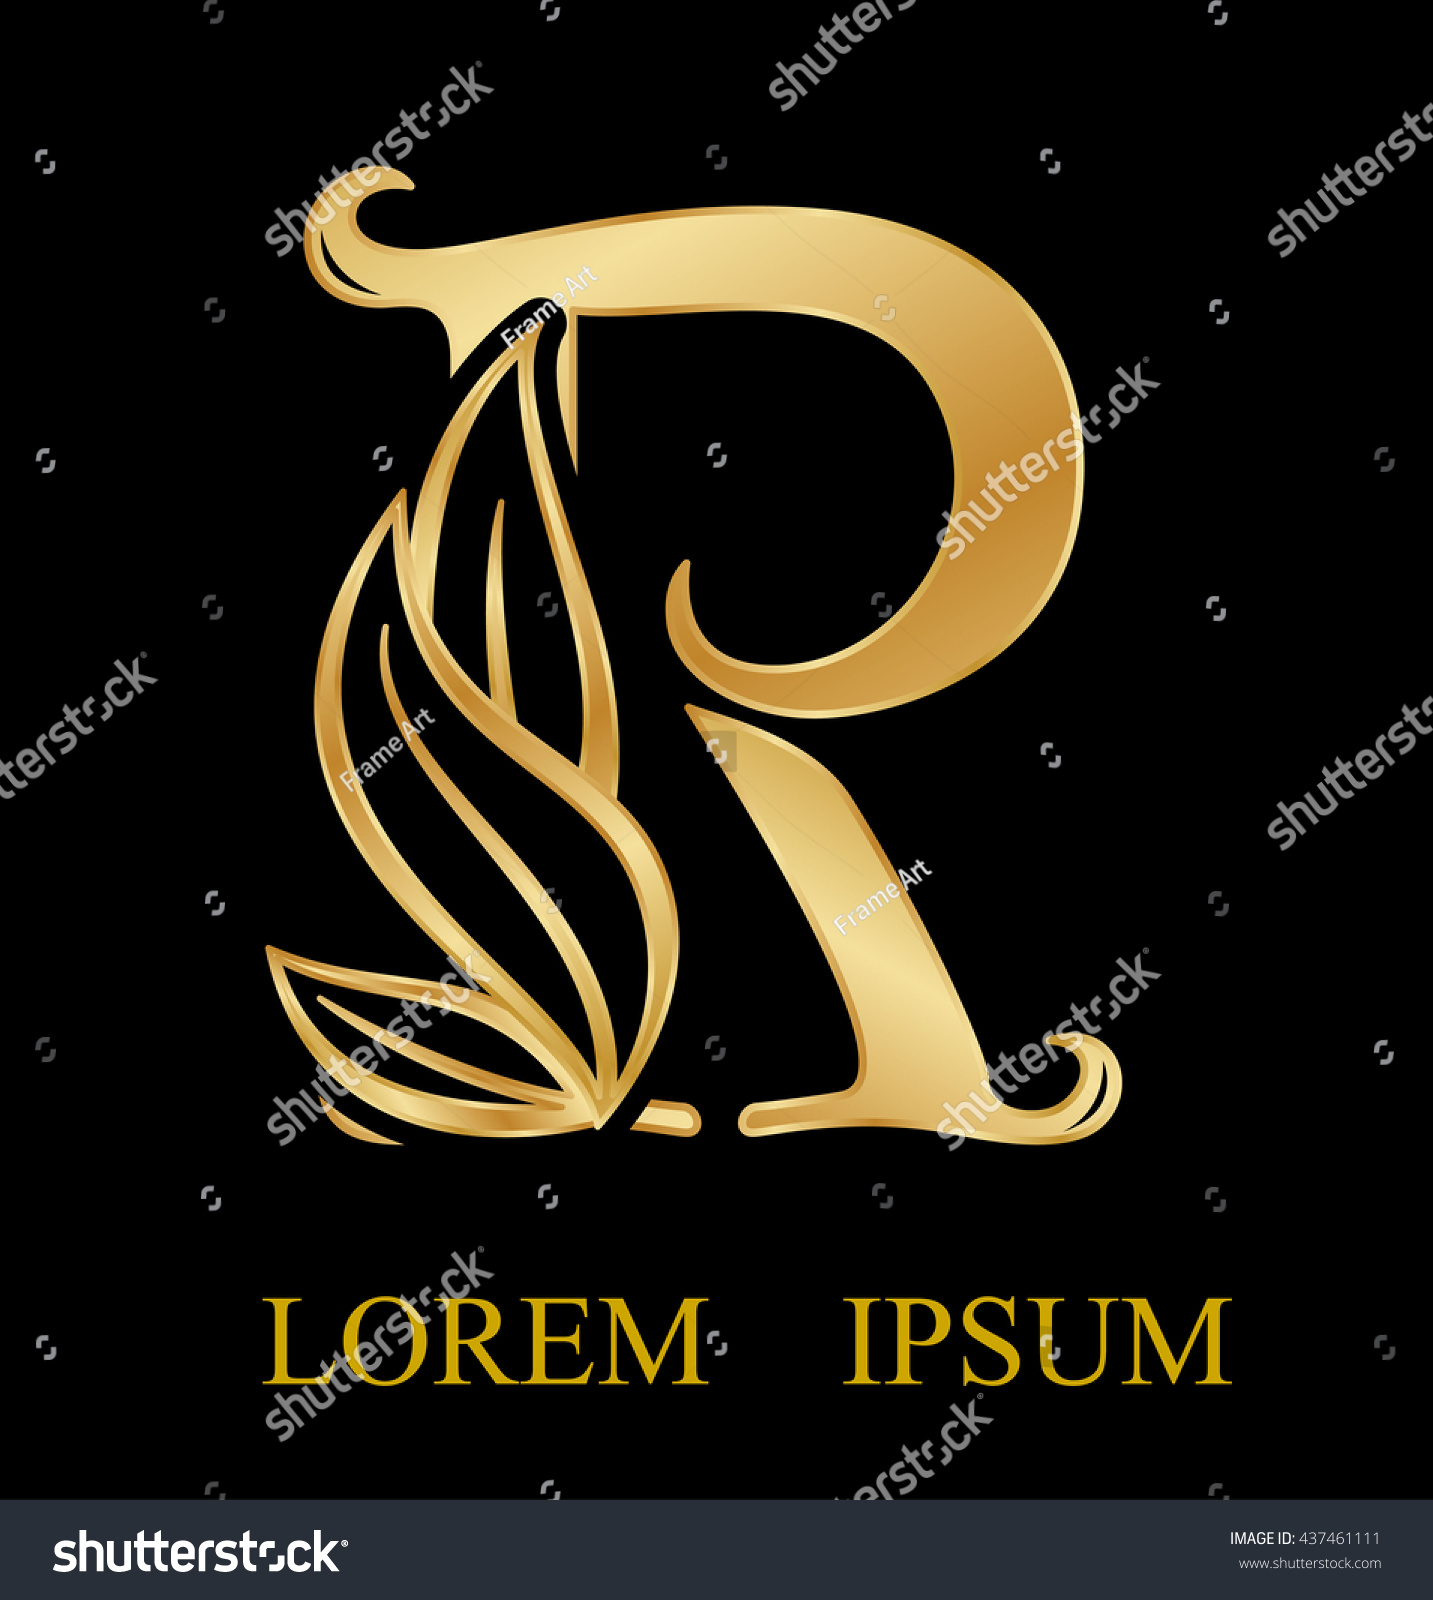 Royalty free abstract letter r logo designgold 437461111 stock abstract letter r logo designgold beauty industry and fashion logosmetics business altavistaventures Image collections